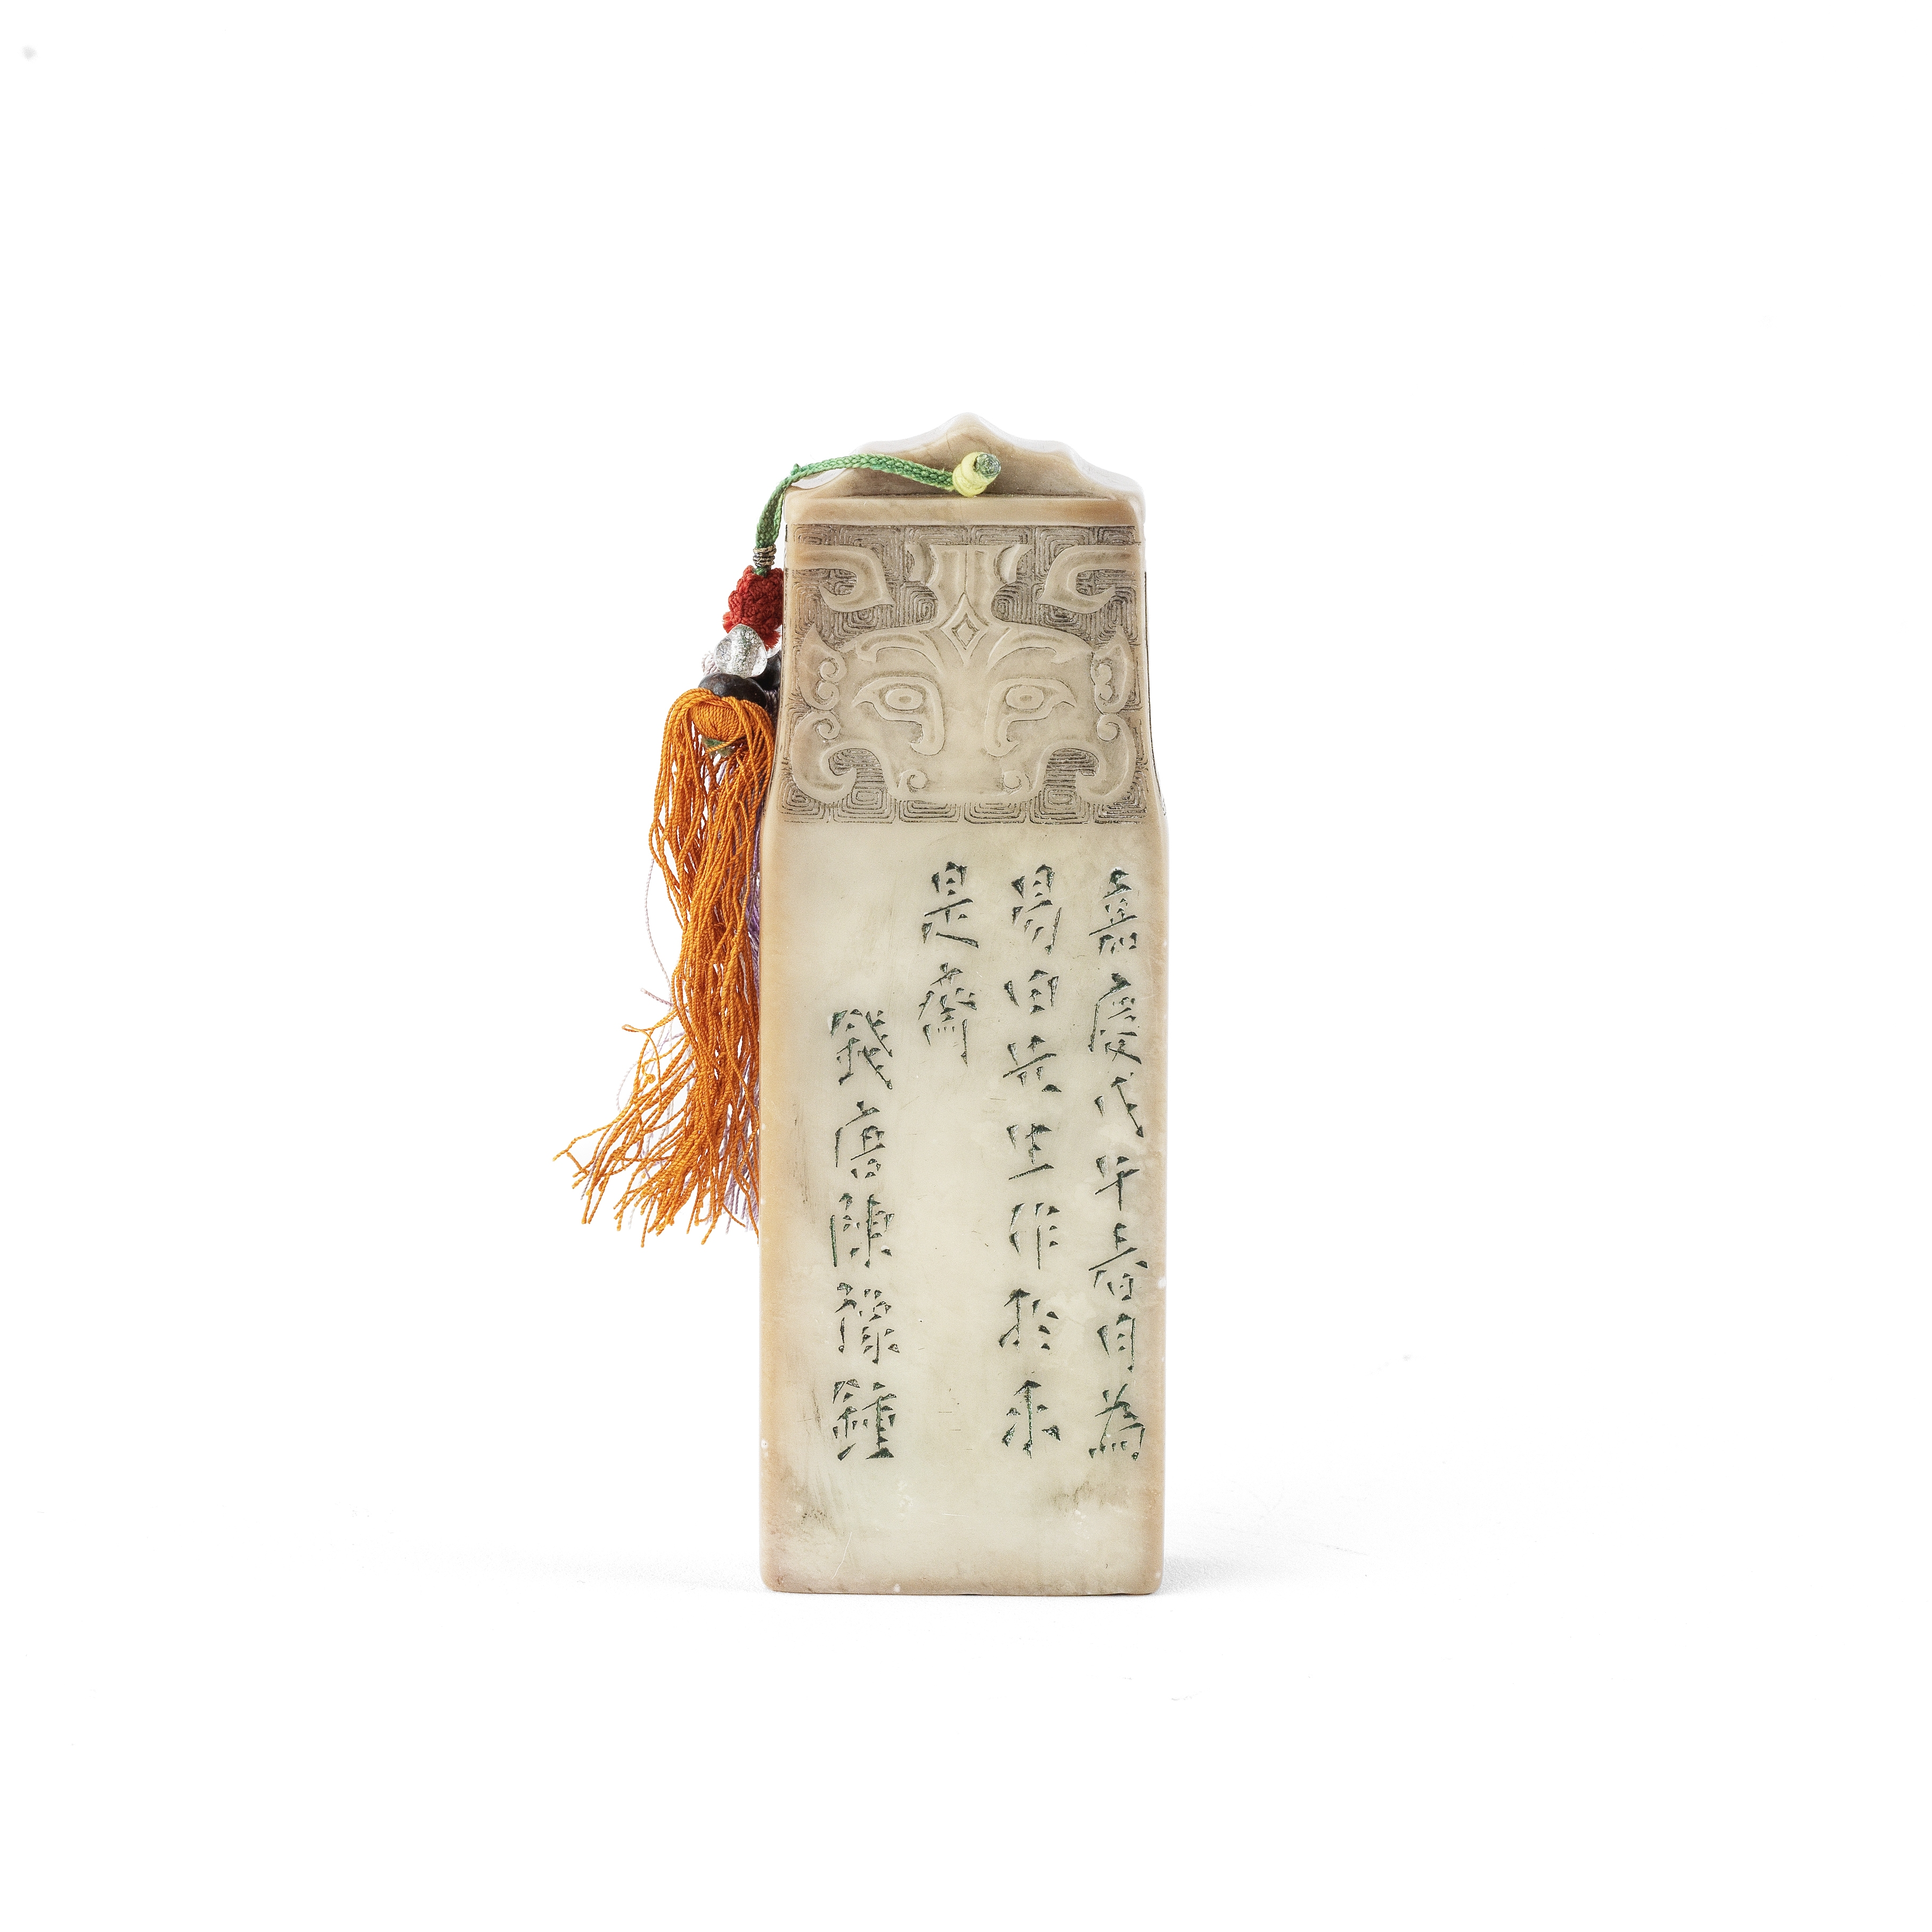 A SOAPSTONE SEAL Attributed to Chen Yuzhong, possibly Jiaqing